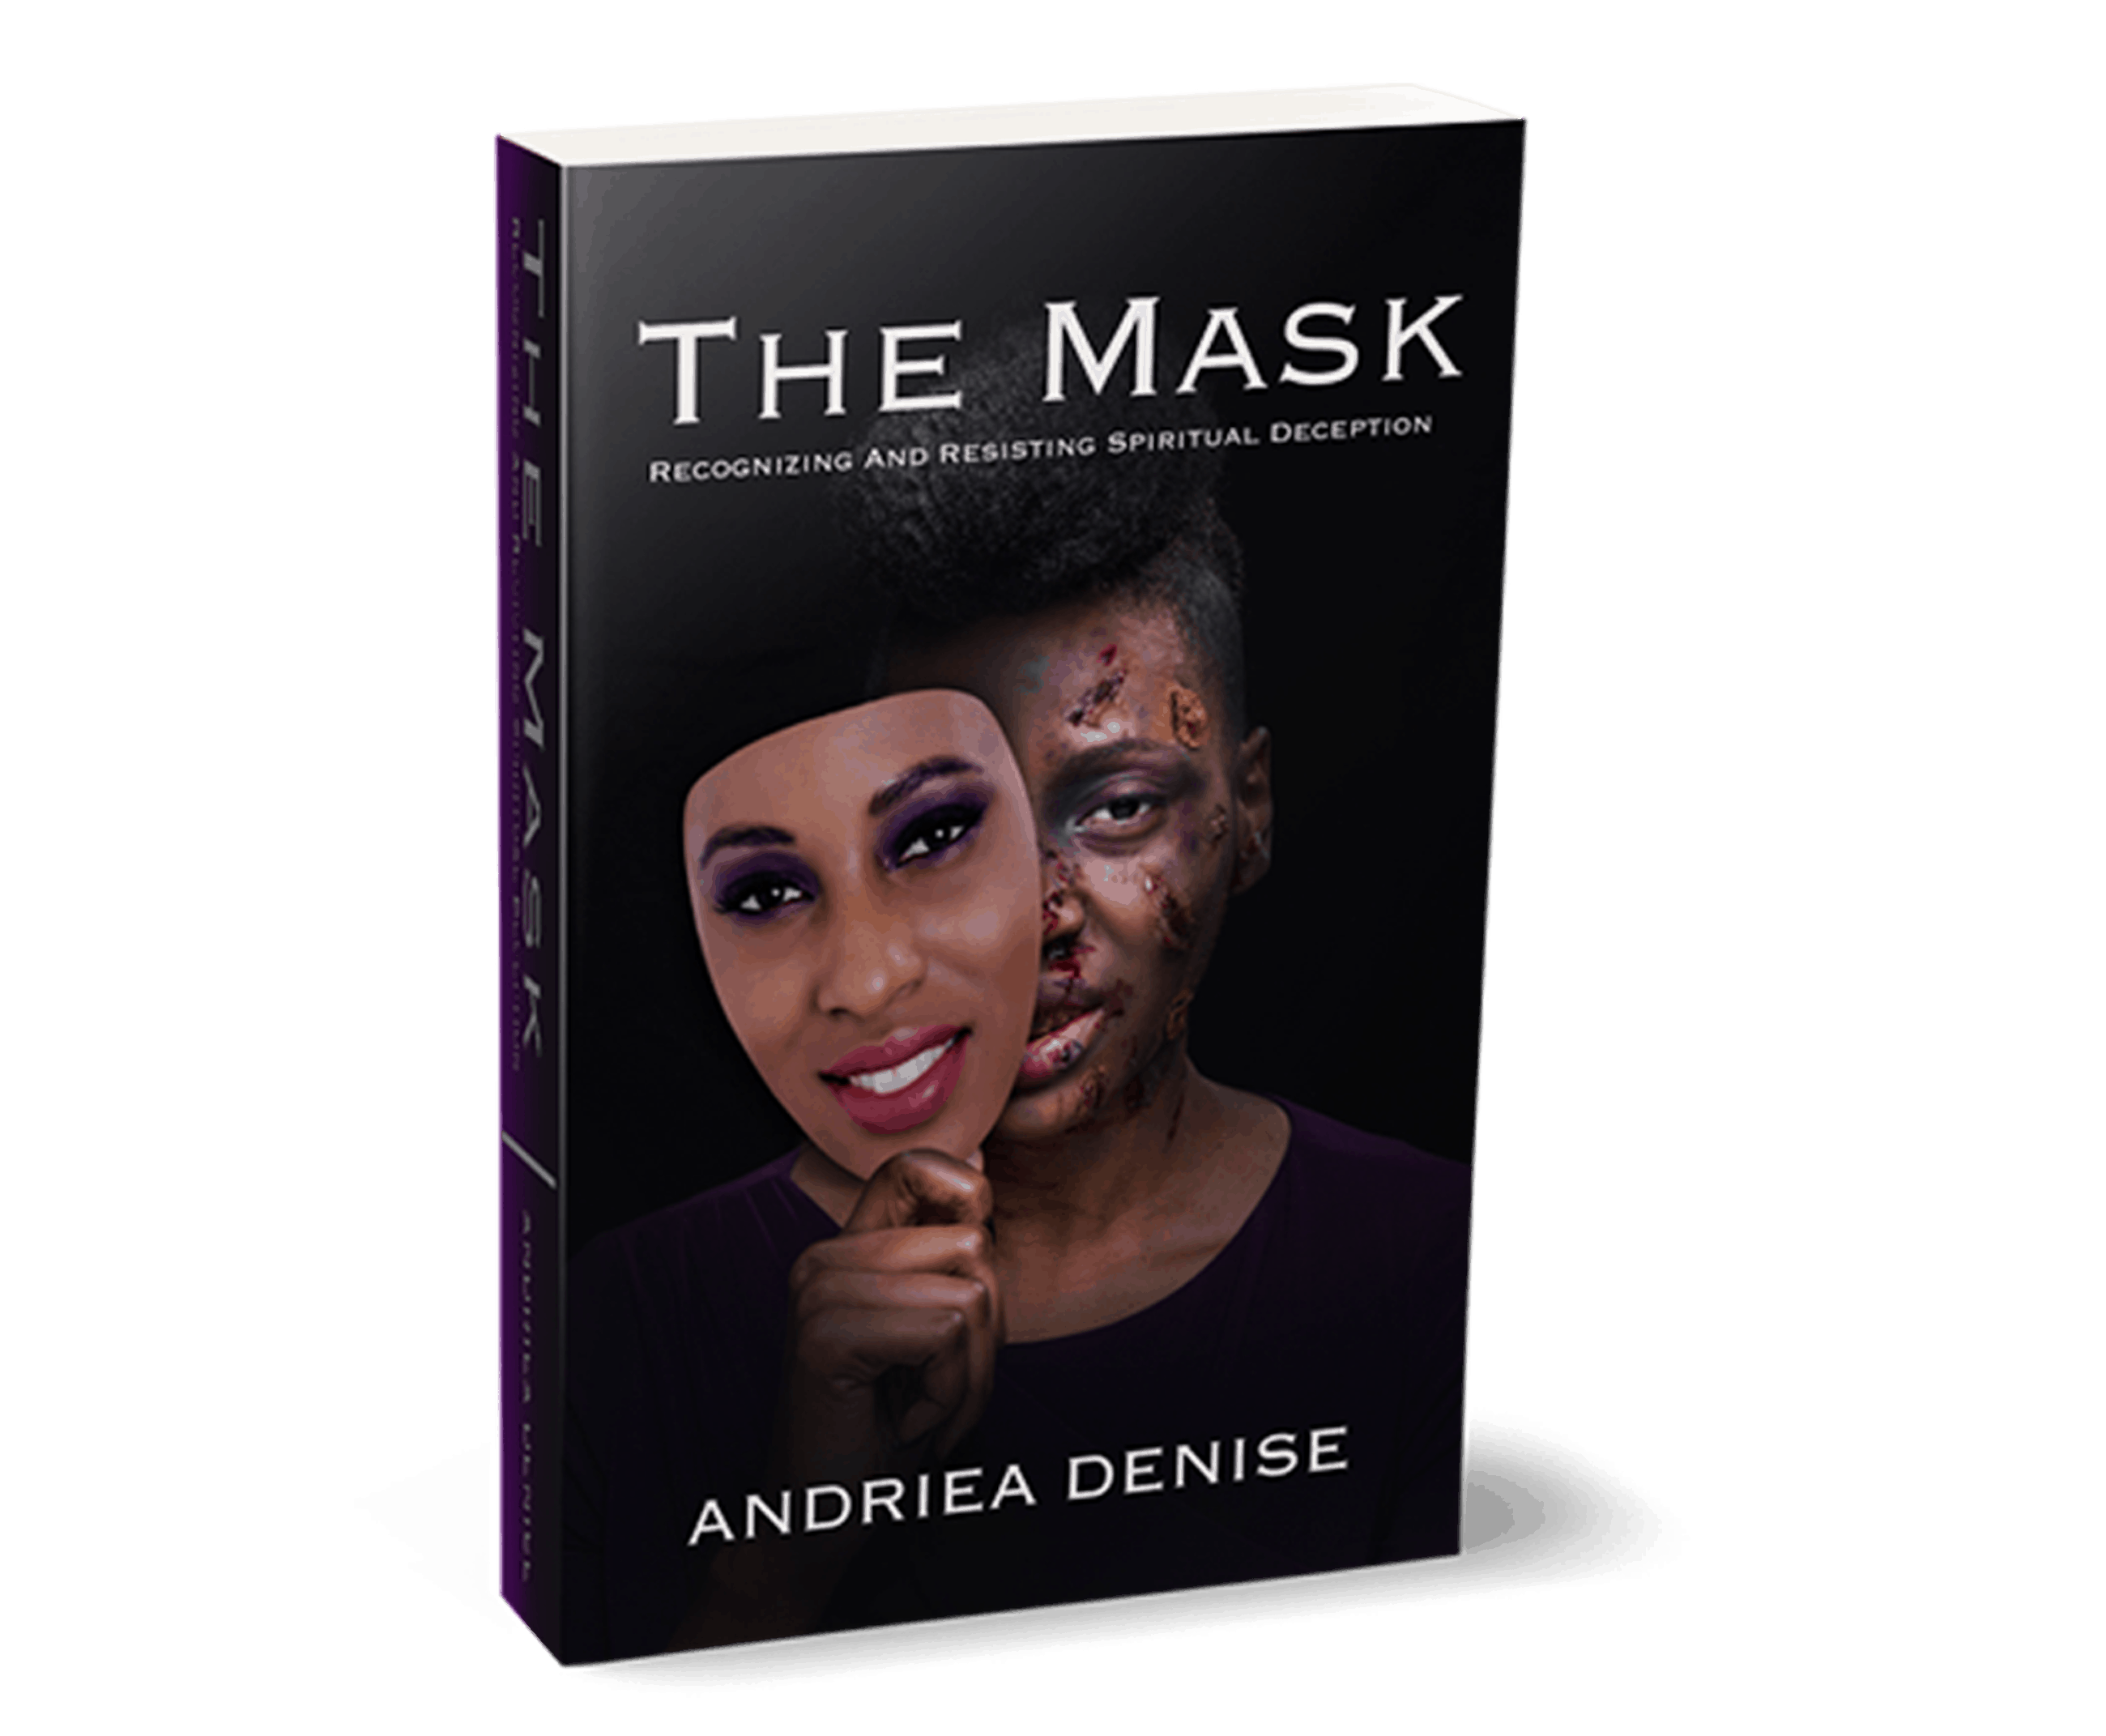 the mask by andriea denise